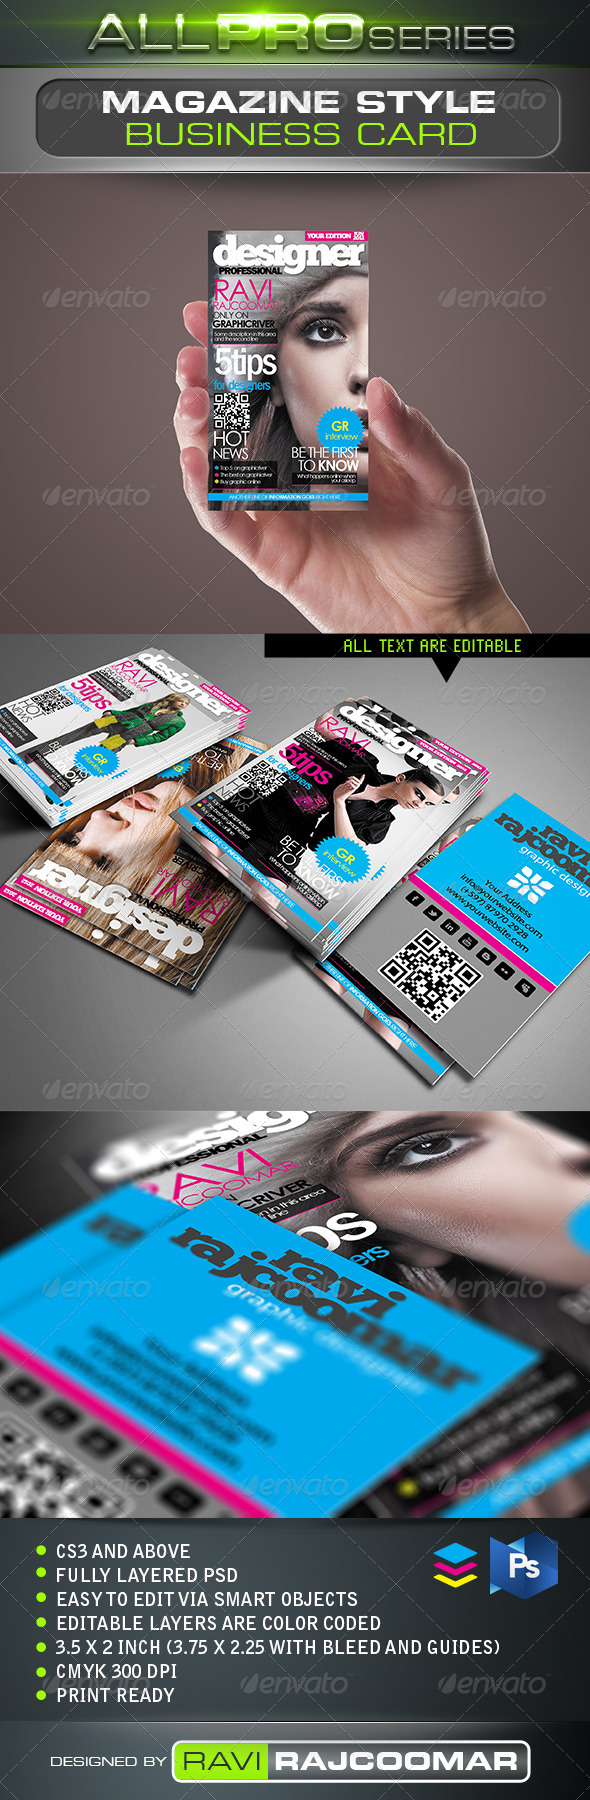 Magazine Style Business Card - Business Cards Print Templates